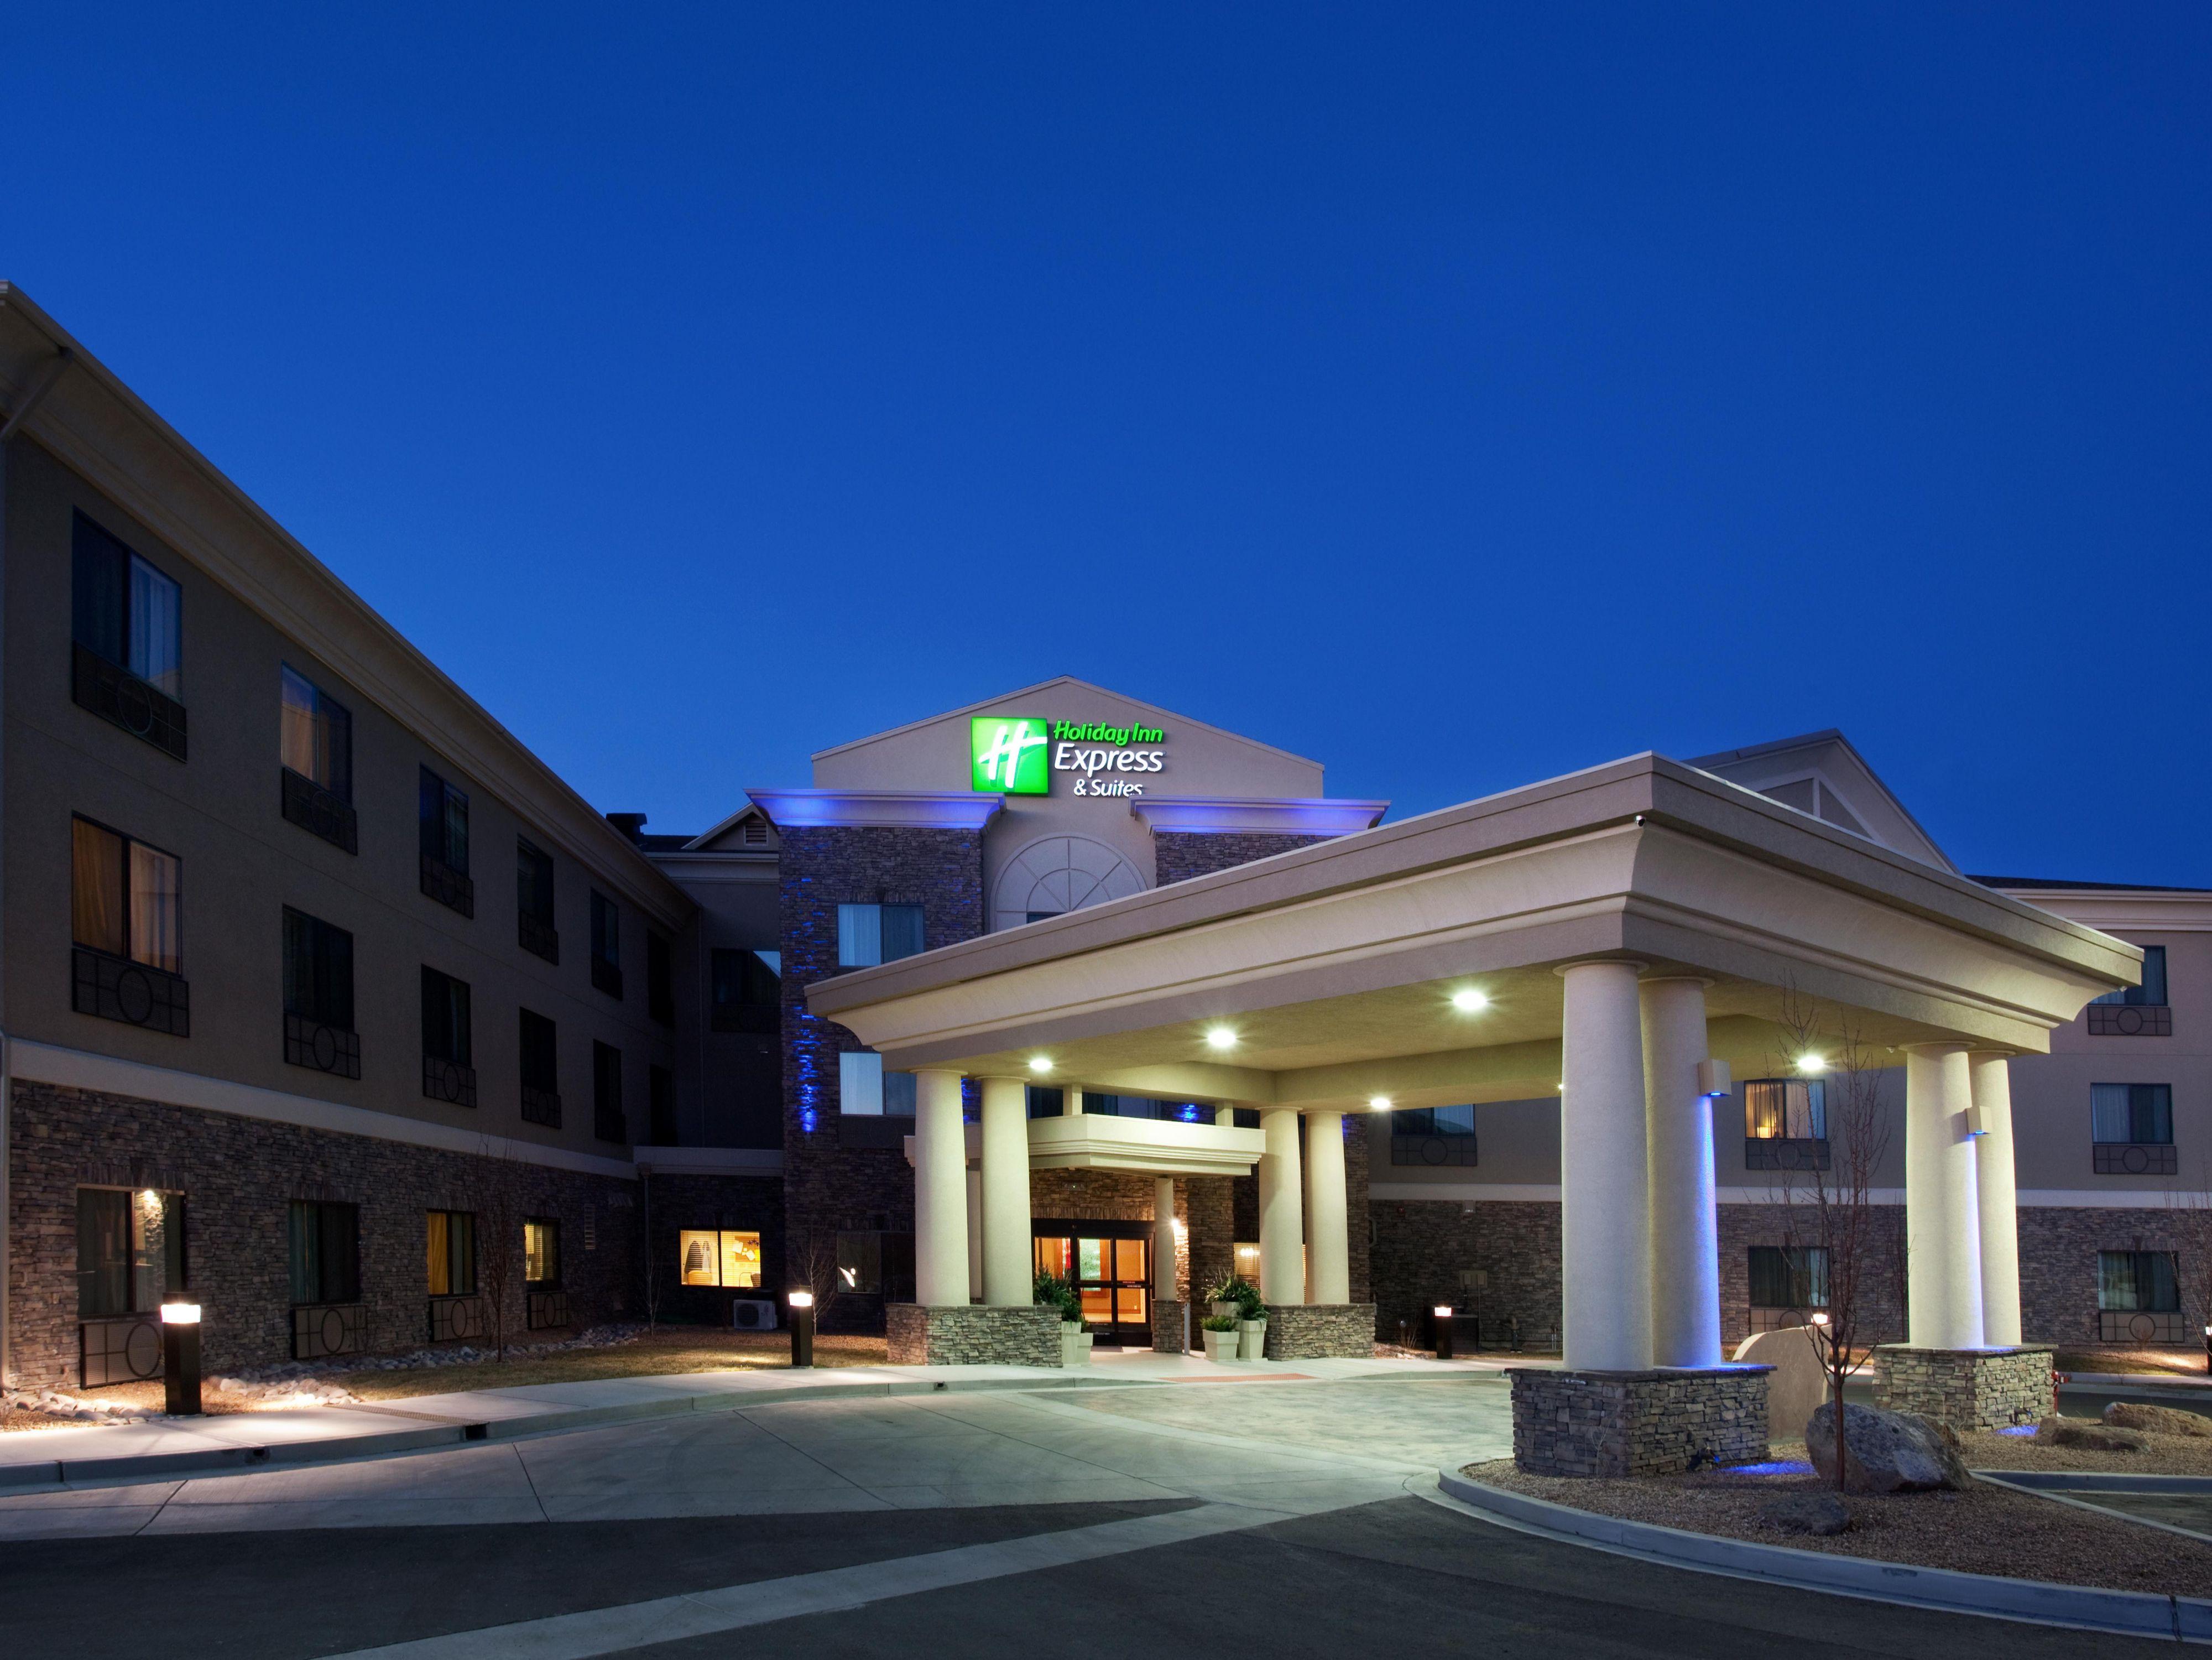 Holiday Inn Express & Suites Los Alamos Entrada Park Hotel by IHG